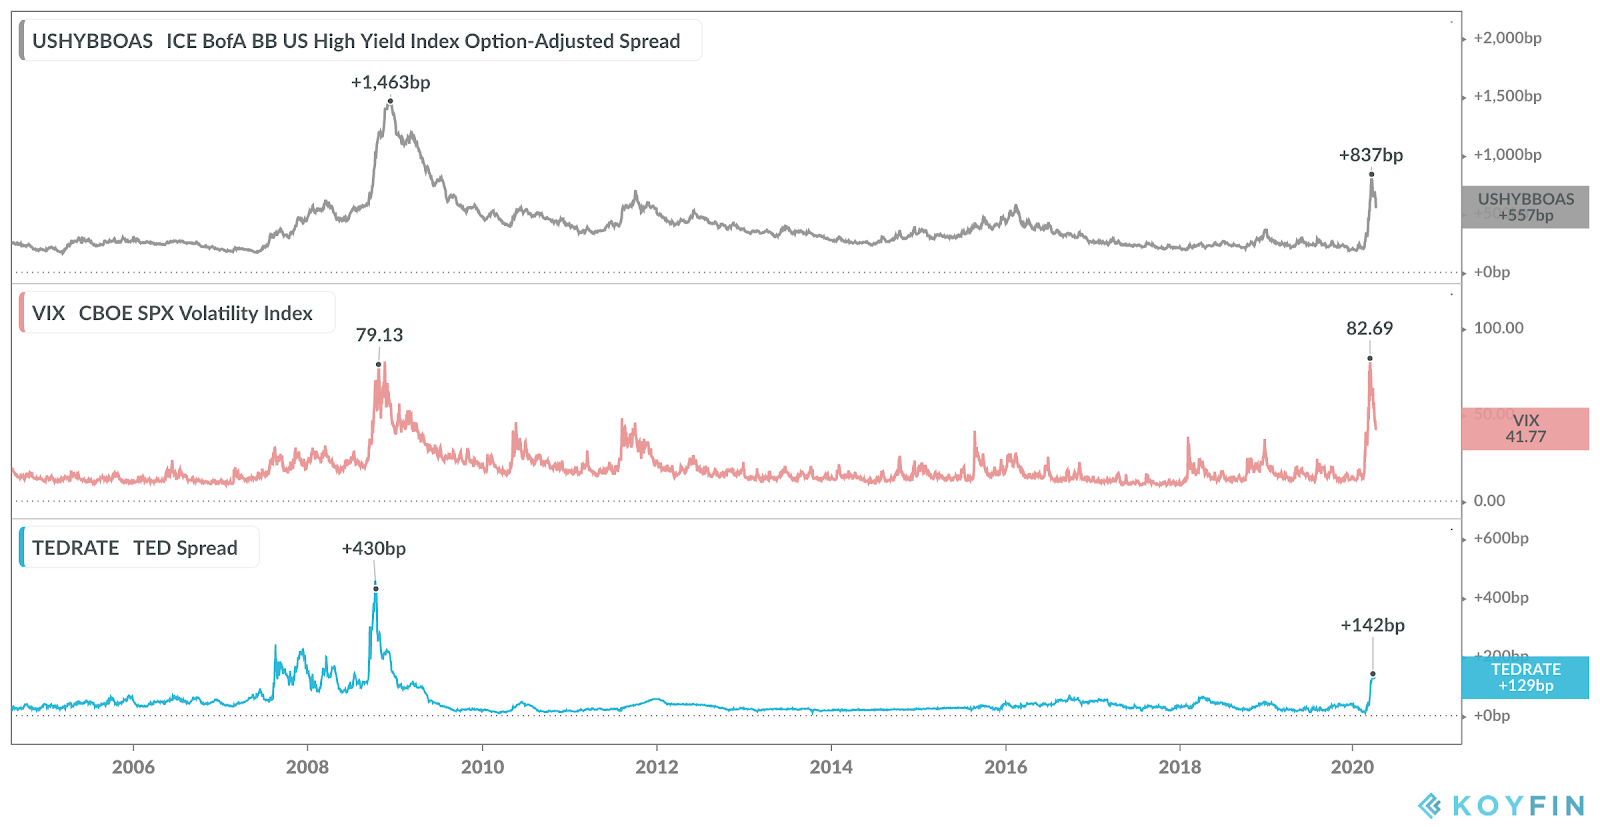 Risk indicators such as high yield spread, VIX and Ted spread are still elevated